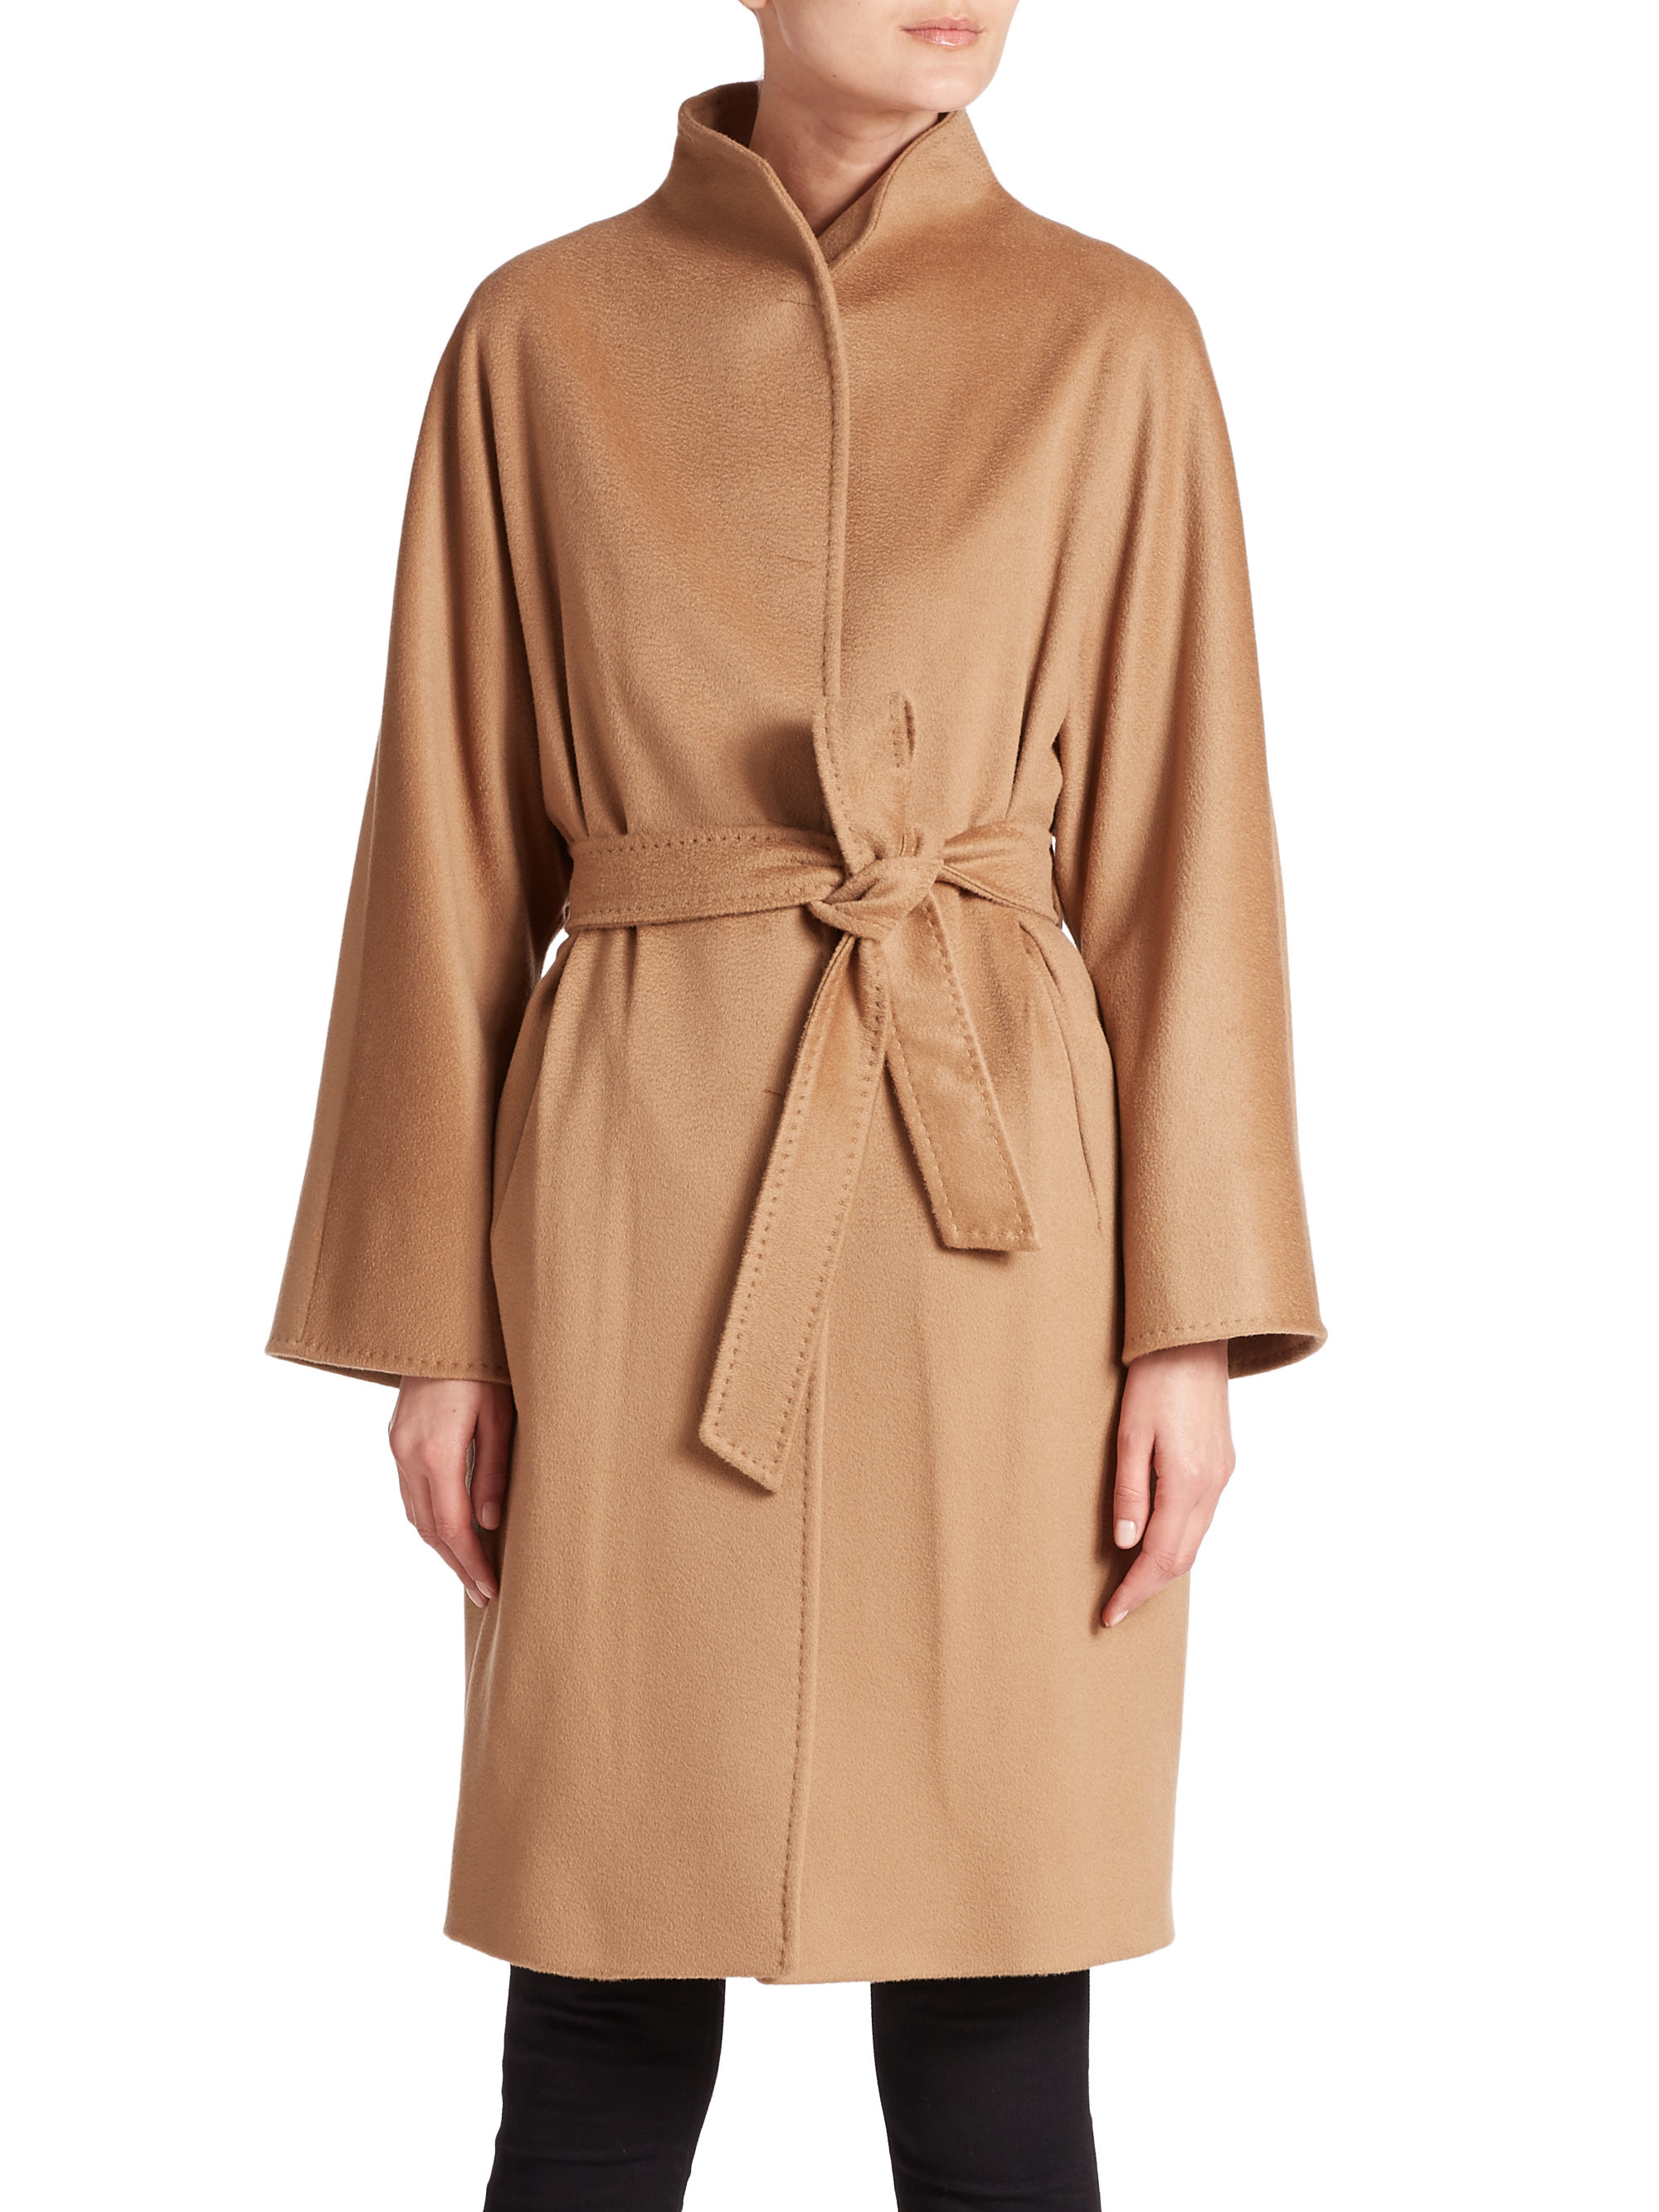 Cinzia rocca Belted Wool Coat in Natural | Lyst